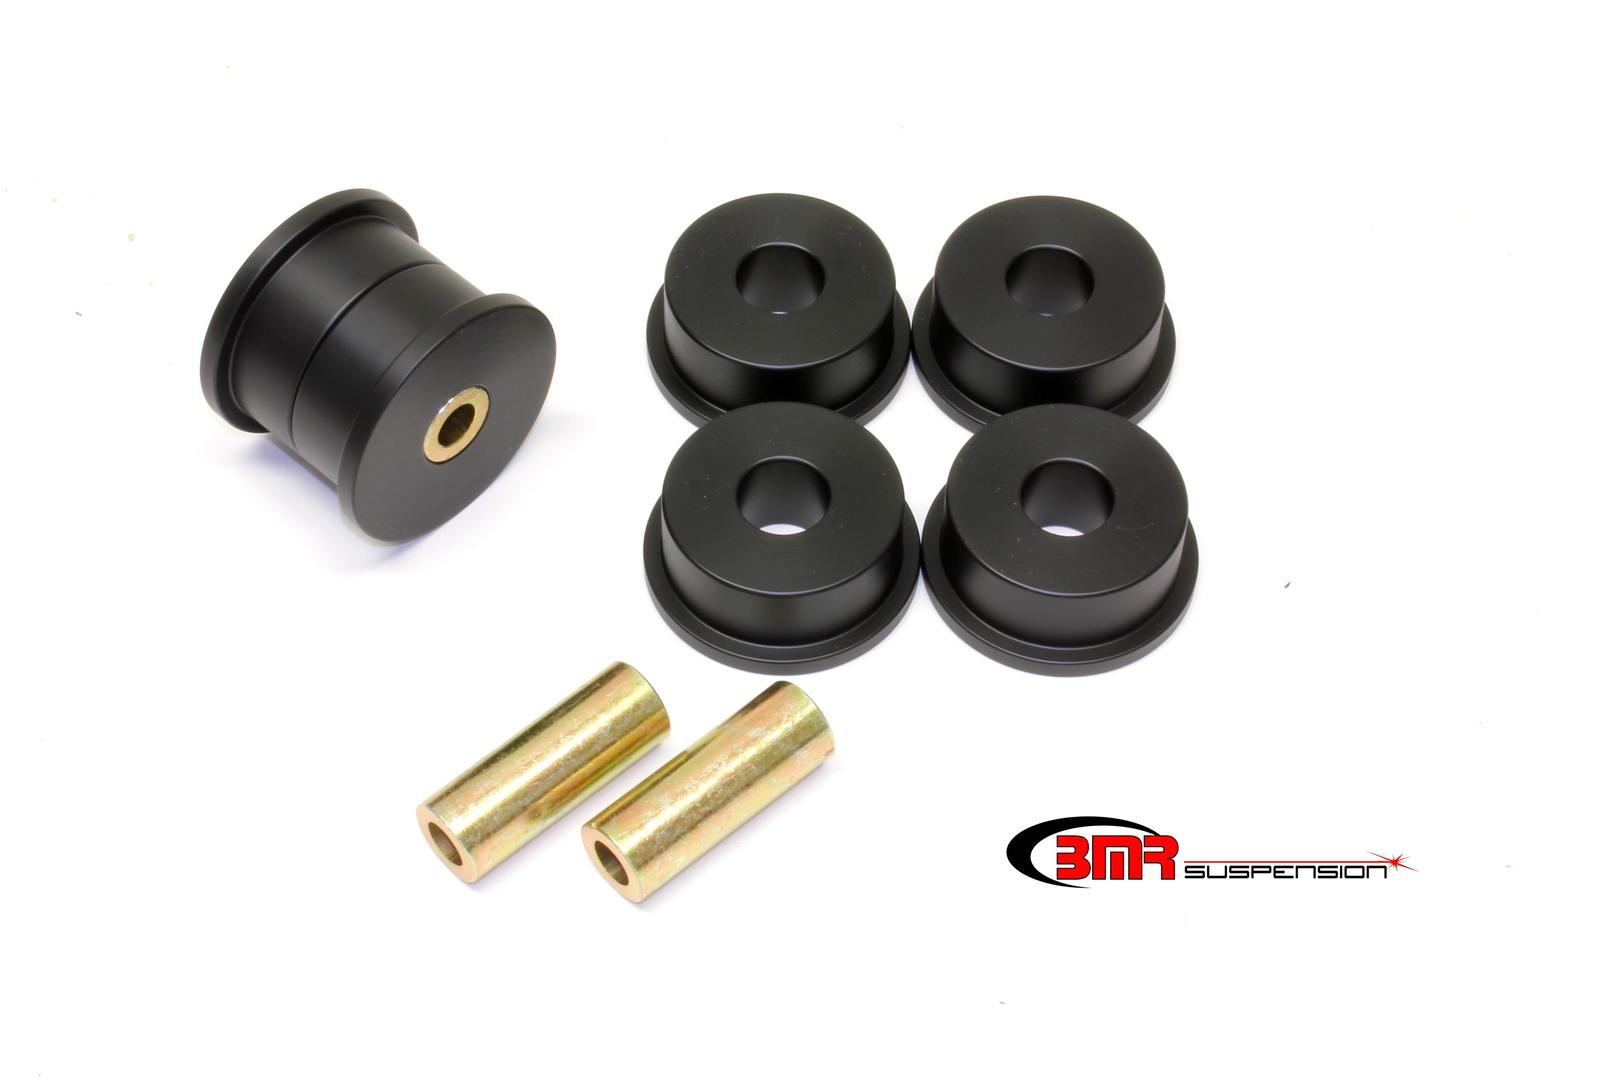 BMR Suspension 2010-14 Camaro Race Rear Cradle Bushing Kit 2